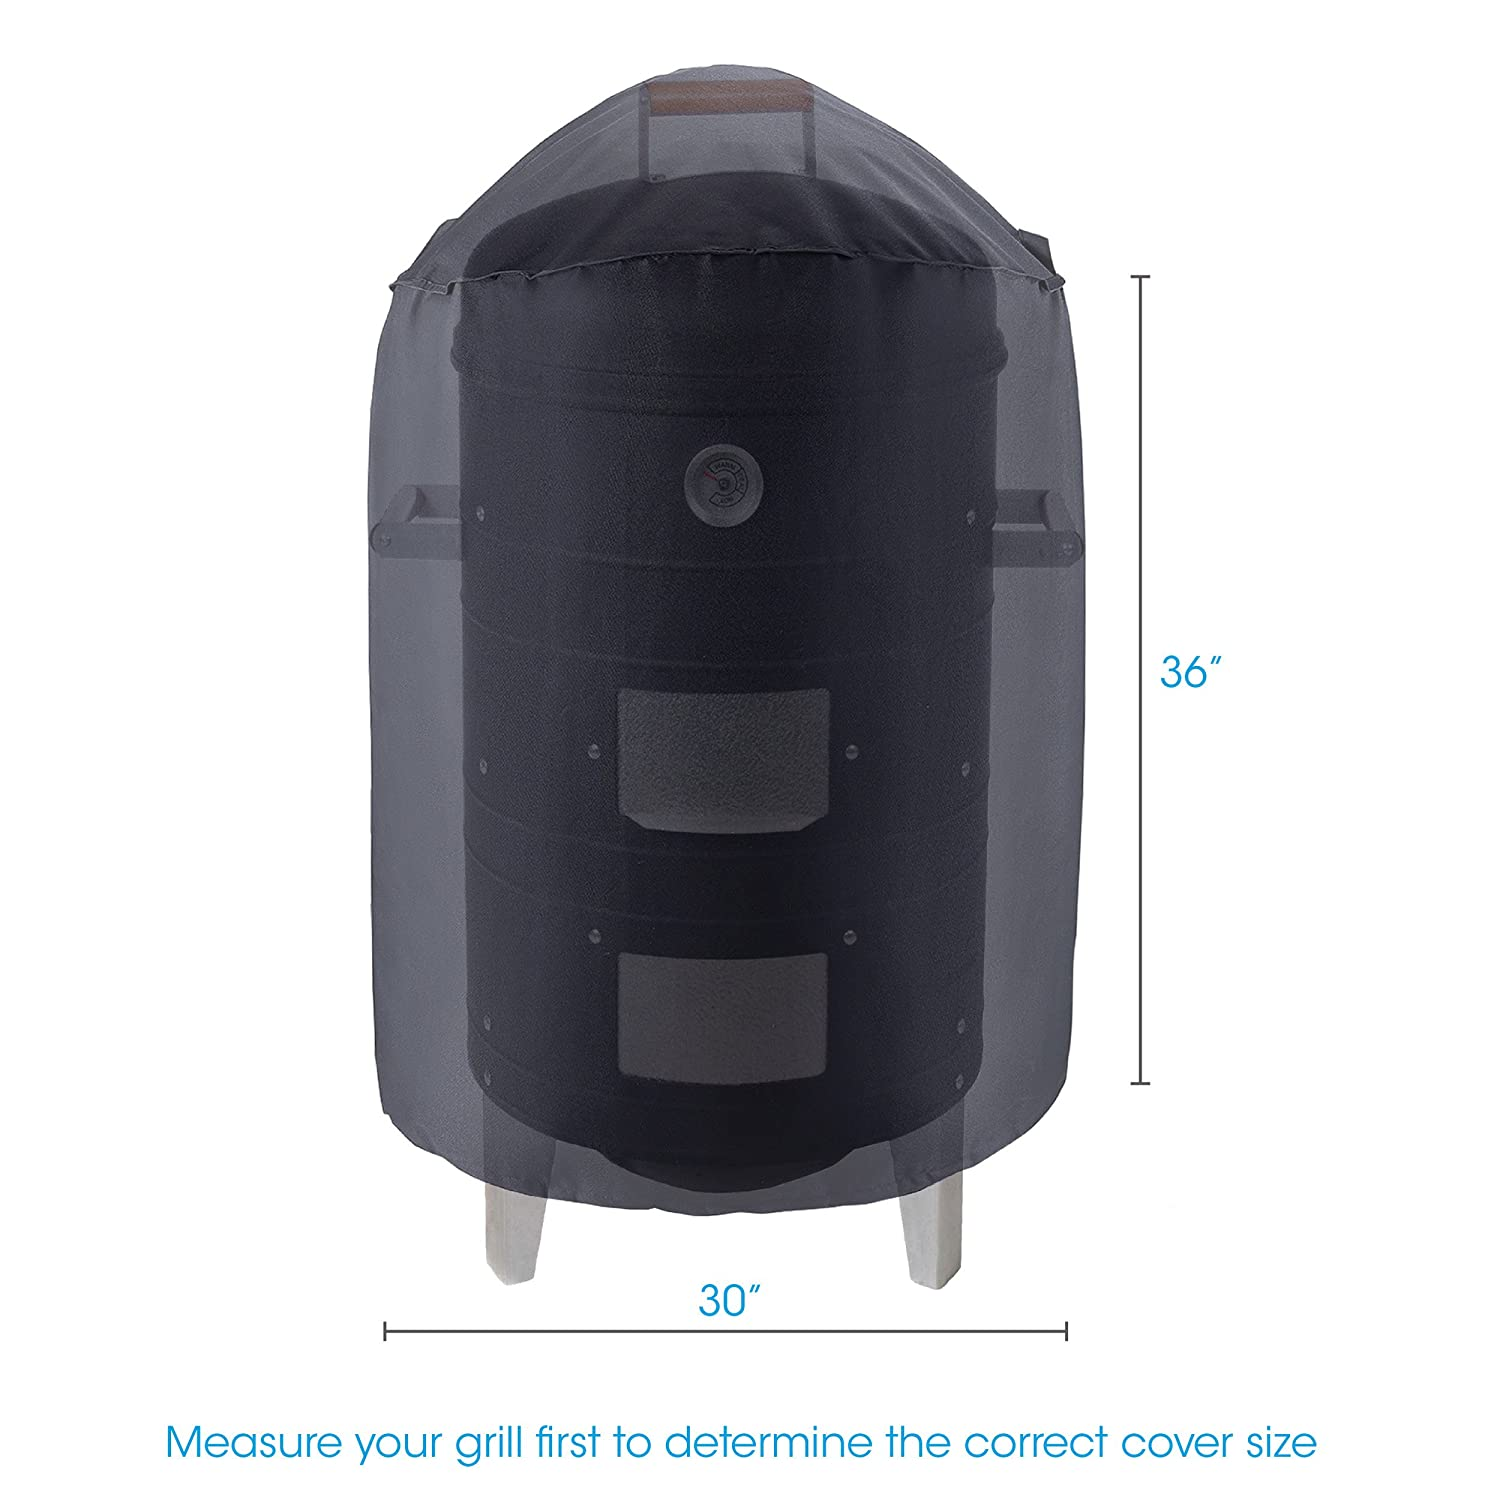 Unicook Heavy Duty Waterproof Dome Smoker Cover,30Dia by 36H,Kettle Grill Cover,Barrel Cover,Water Smoker Cover,Fade and UV Resistant Material,Fit Grill/Smoker for more 30Dia by 36H Homepro Manufacturing